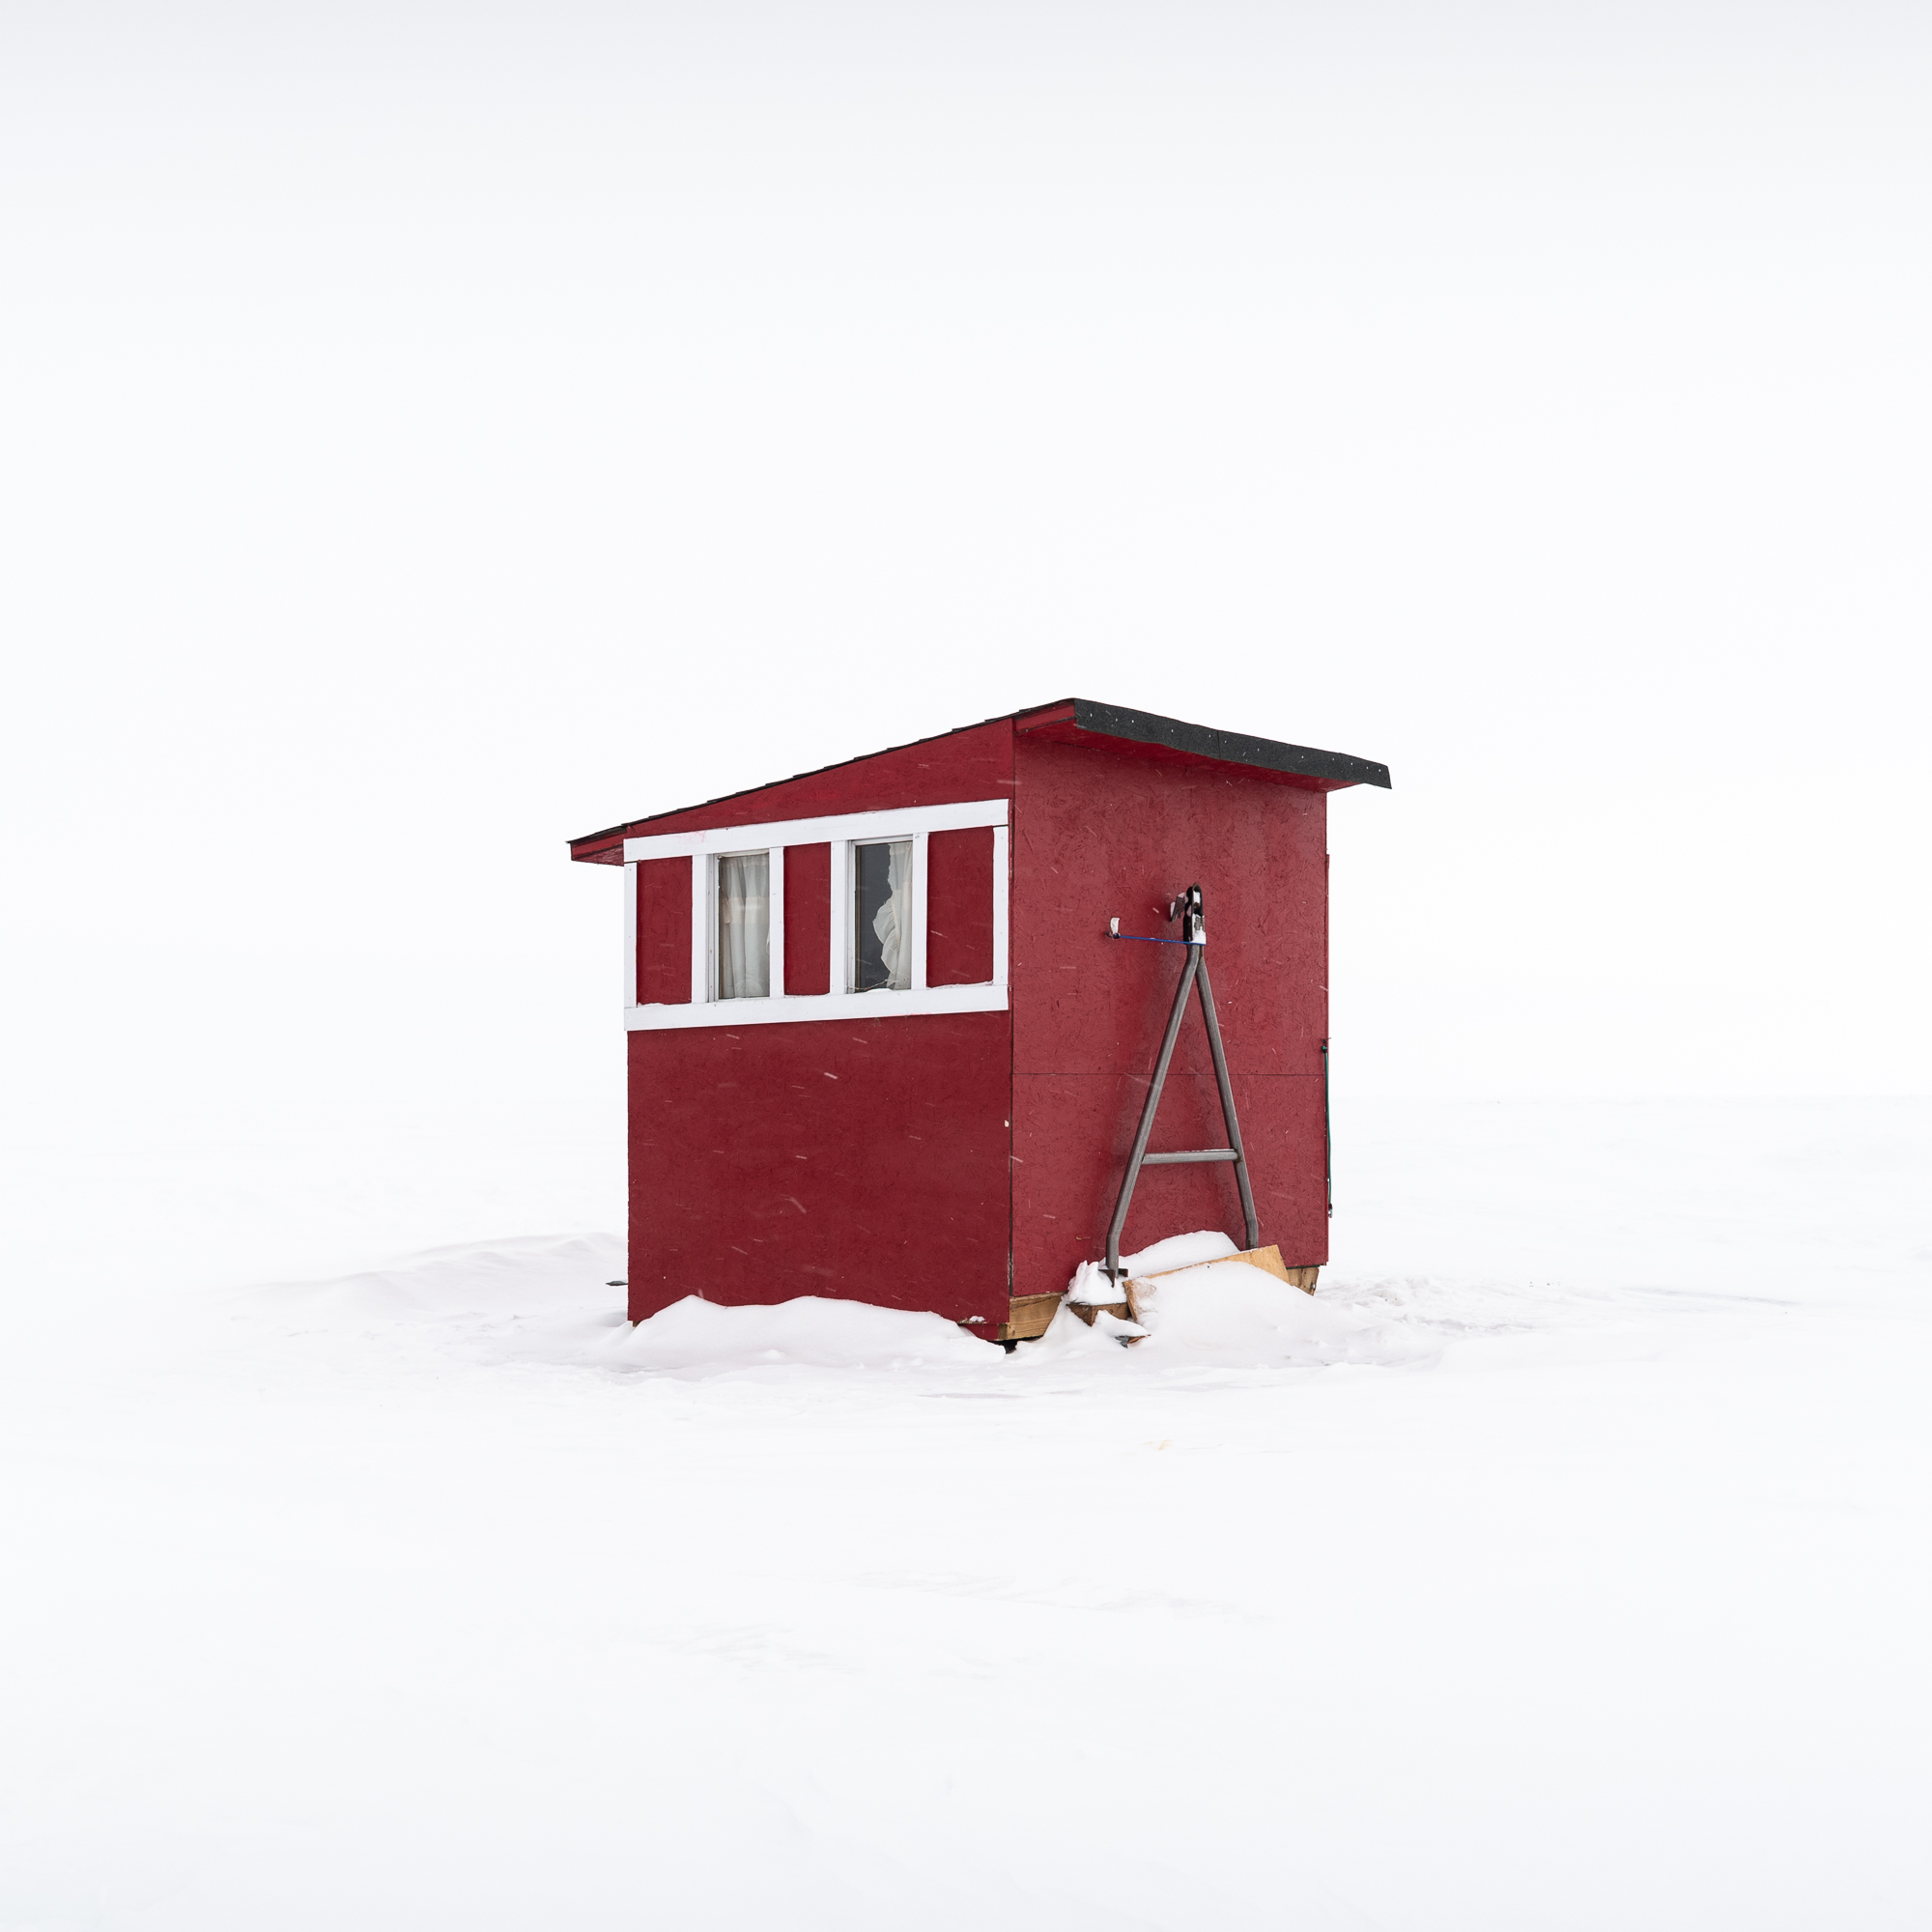 Ice Fishing Hut IV